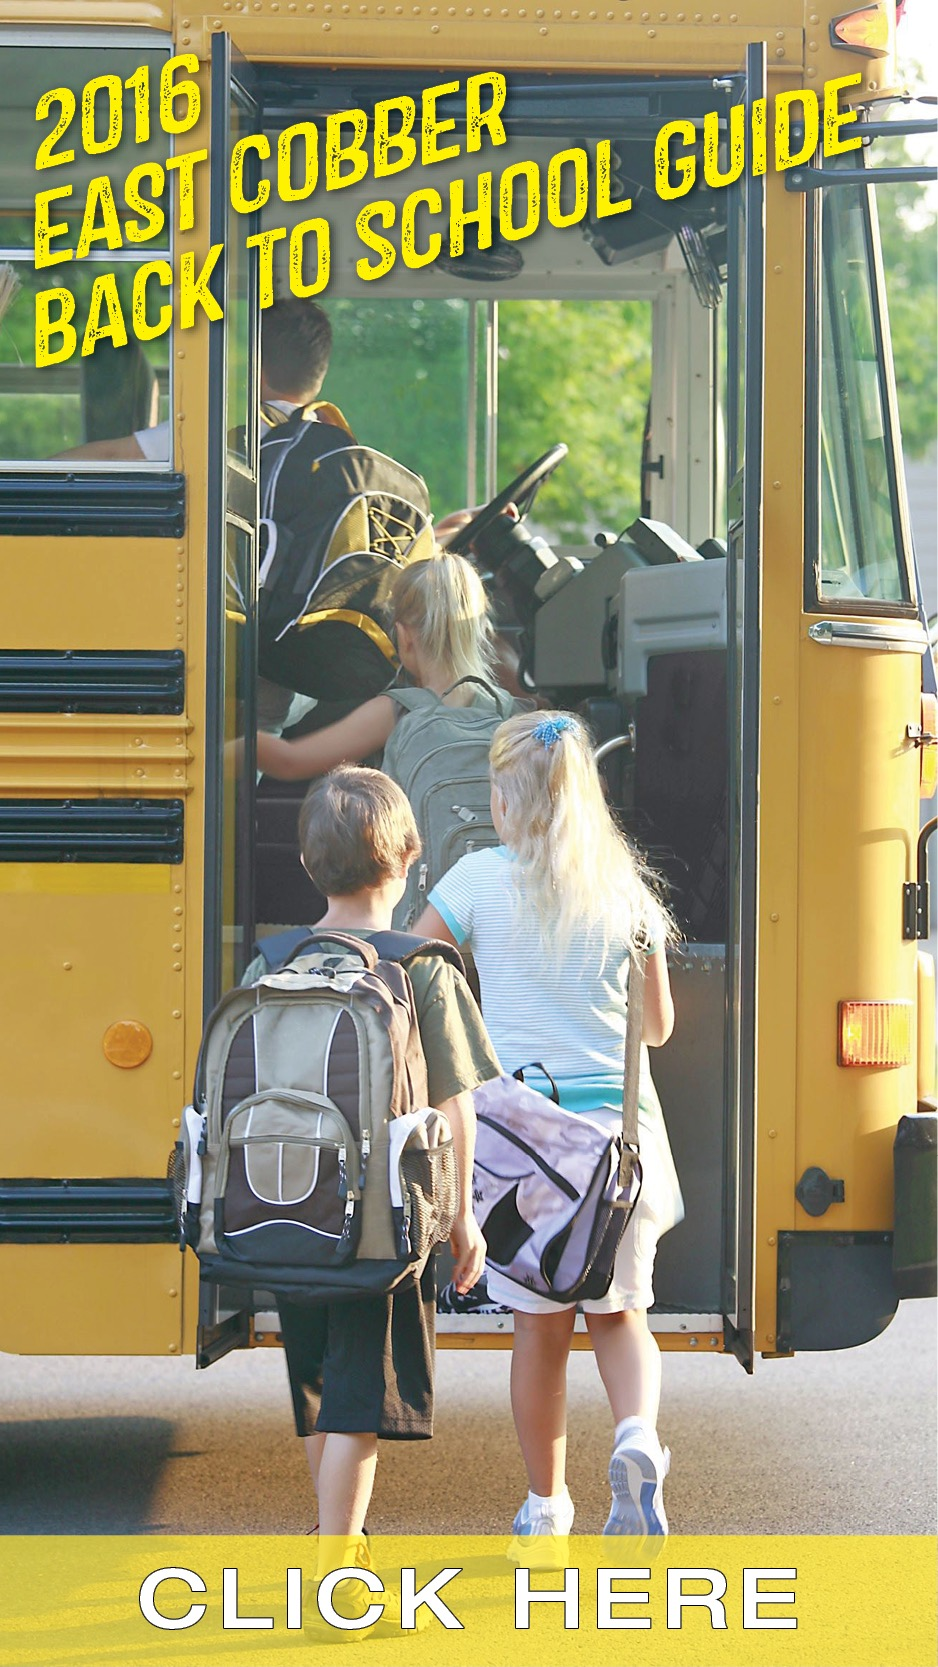 Download the 2016 East Cobber Back to School Guide